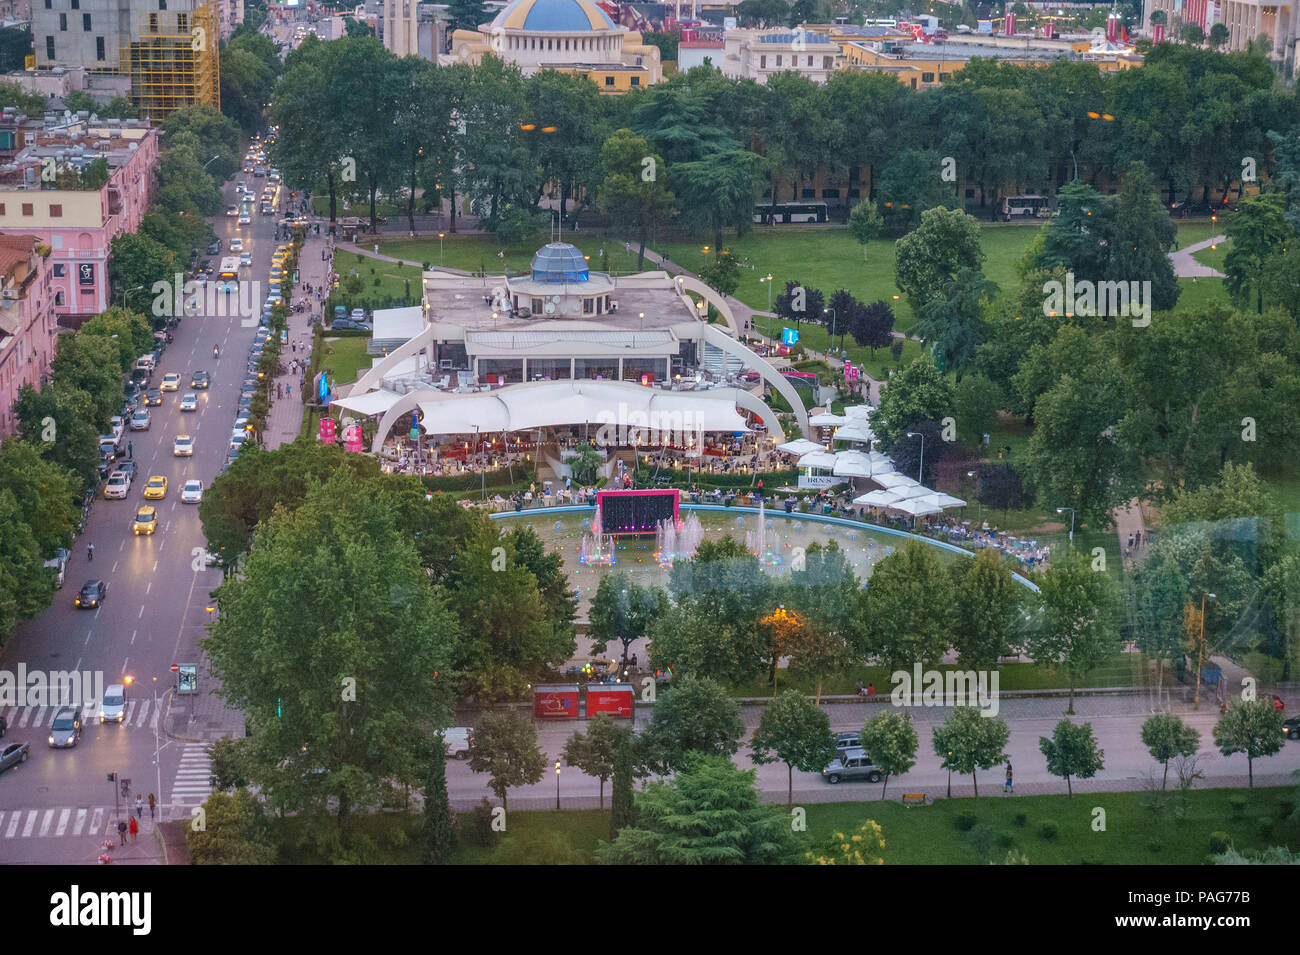 Areal cityscape view of Tirana city center at sunset. Modern Architectural buildings and urban photography in Tirana, the capital of Albania. - Stock Image